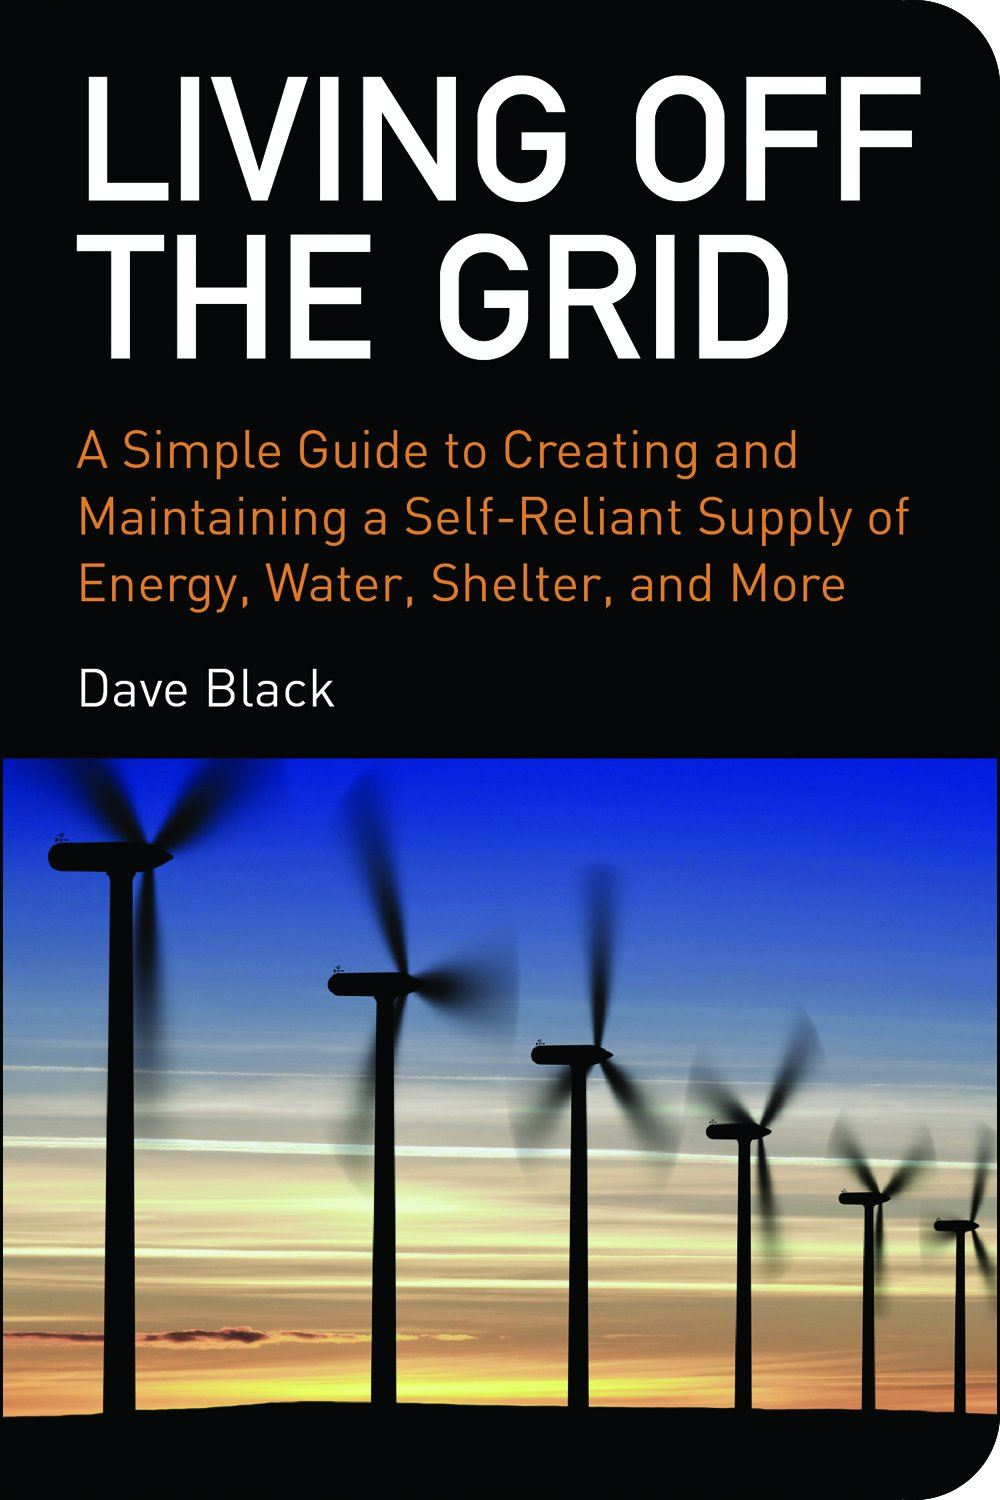 Living Off The Grid: A Simple Guide to a Self Reliant Supply of Energy, Water, Shelter, and More